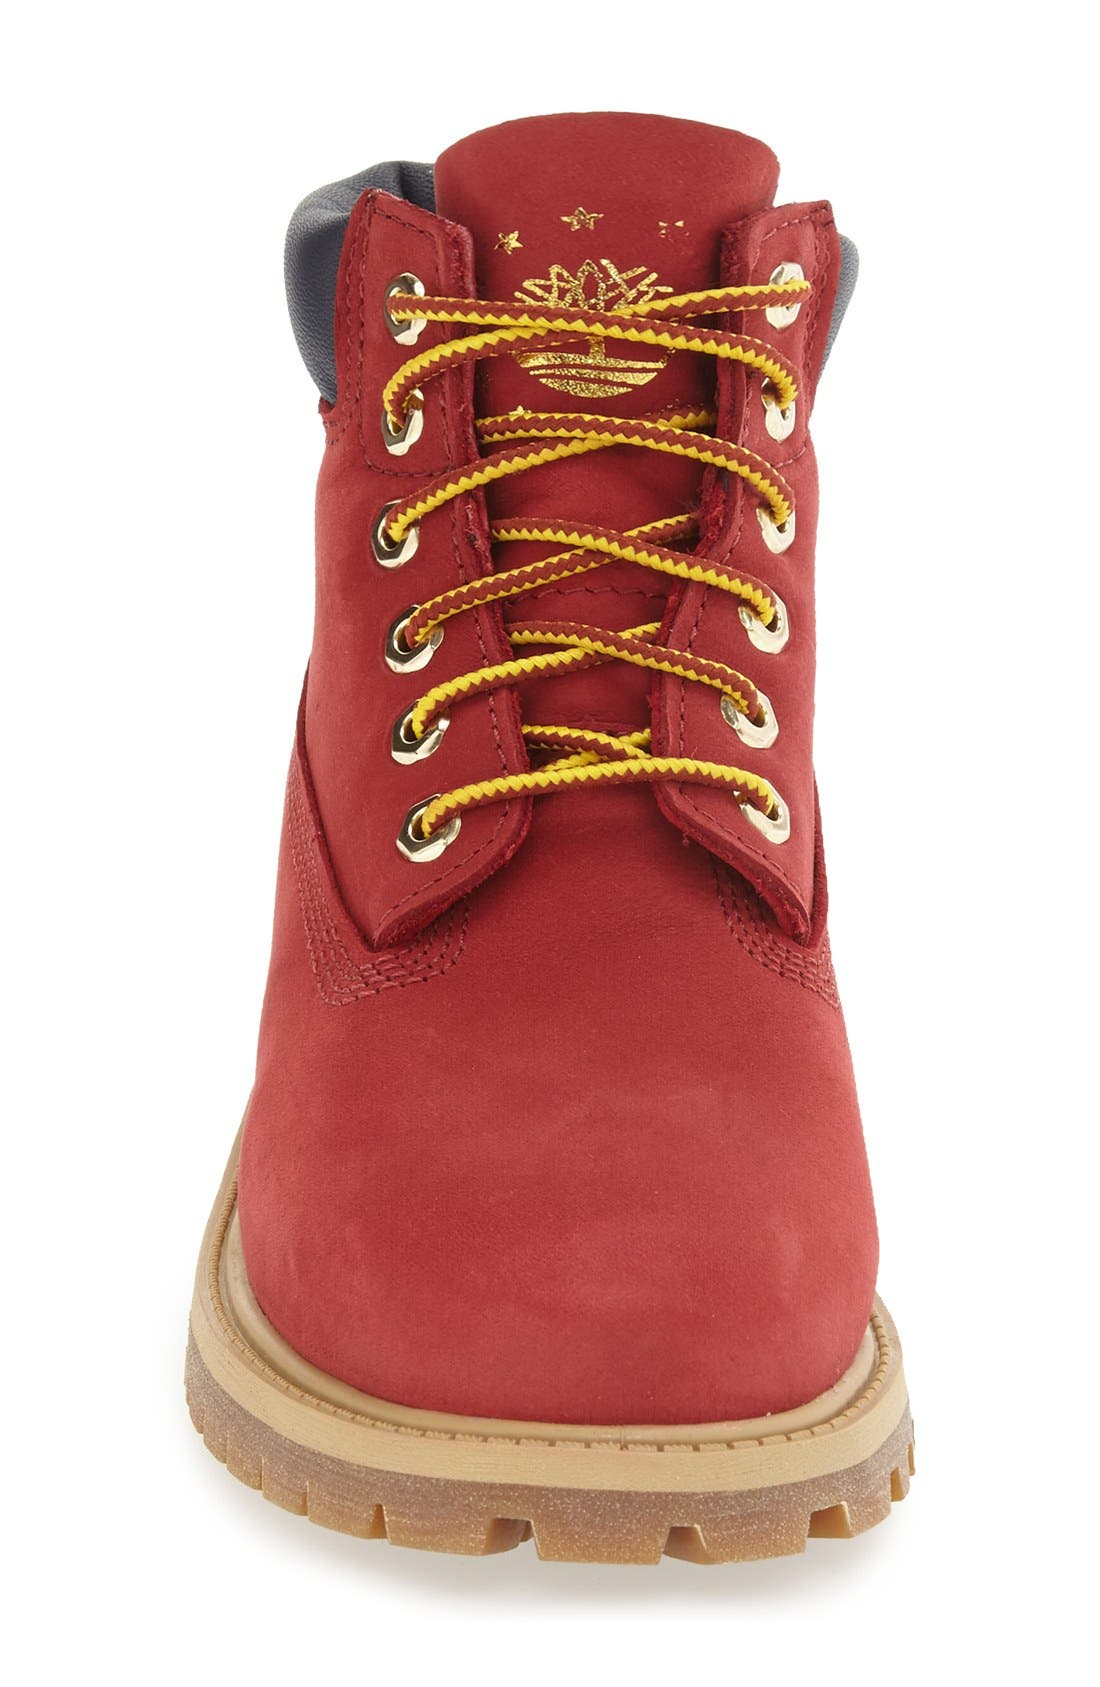 'Patriotic 6 Inch' Waterproof PrimaLoft<sup>®</sup> ECO Insulated Winter Boot,                             Alternate thumbnail 3, color,                             641